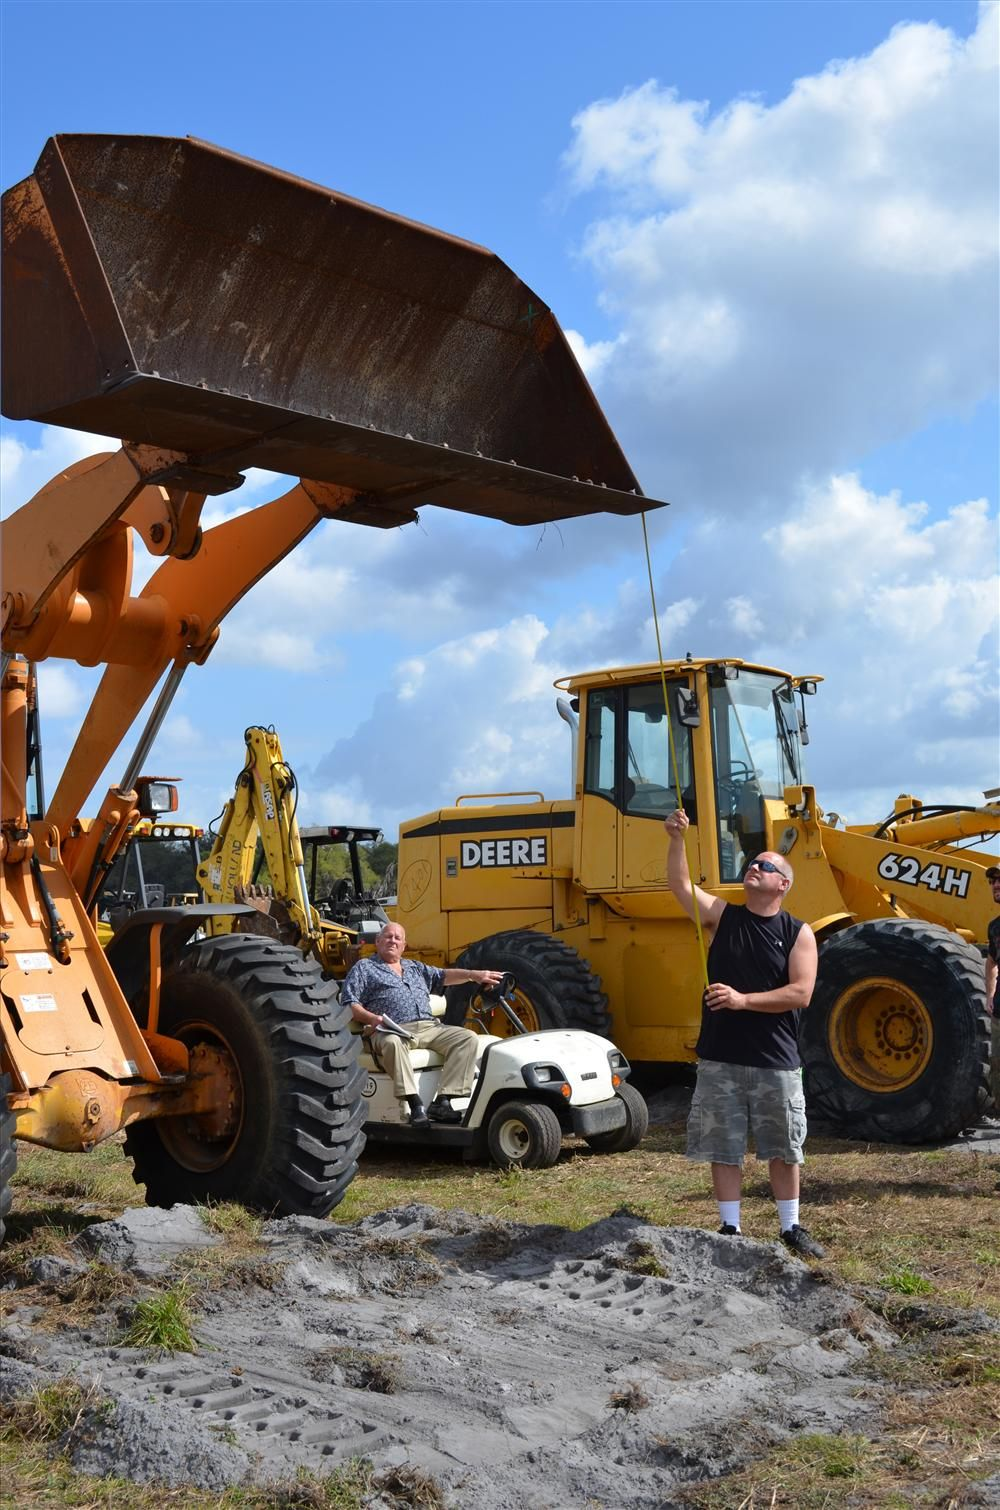 Larry Youngblood, owner and president of Youngblood Paving Inc., Wampum, Pa., measures the bucket height on this wheel loader.